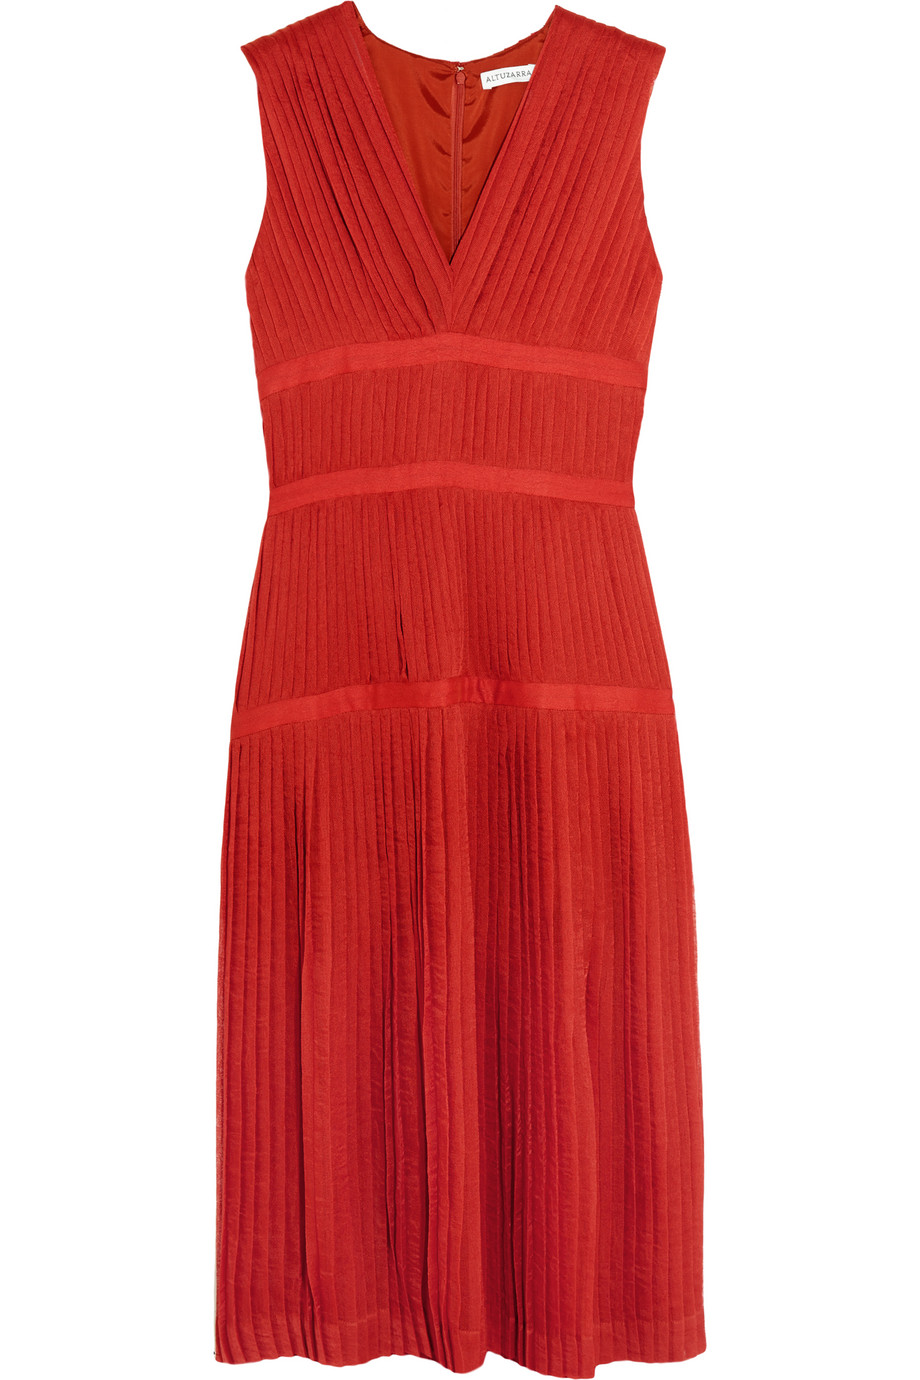 Altuzarra Mari Pleated Gauze Dress, Red, Women's, Size: 38